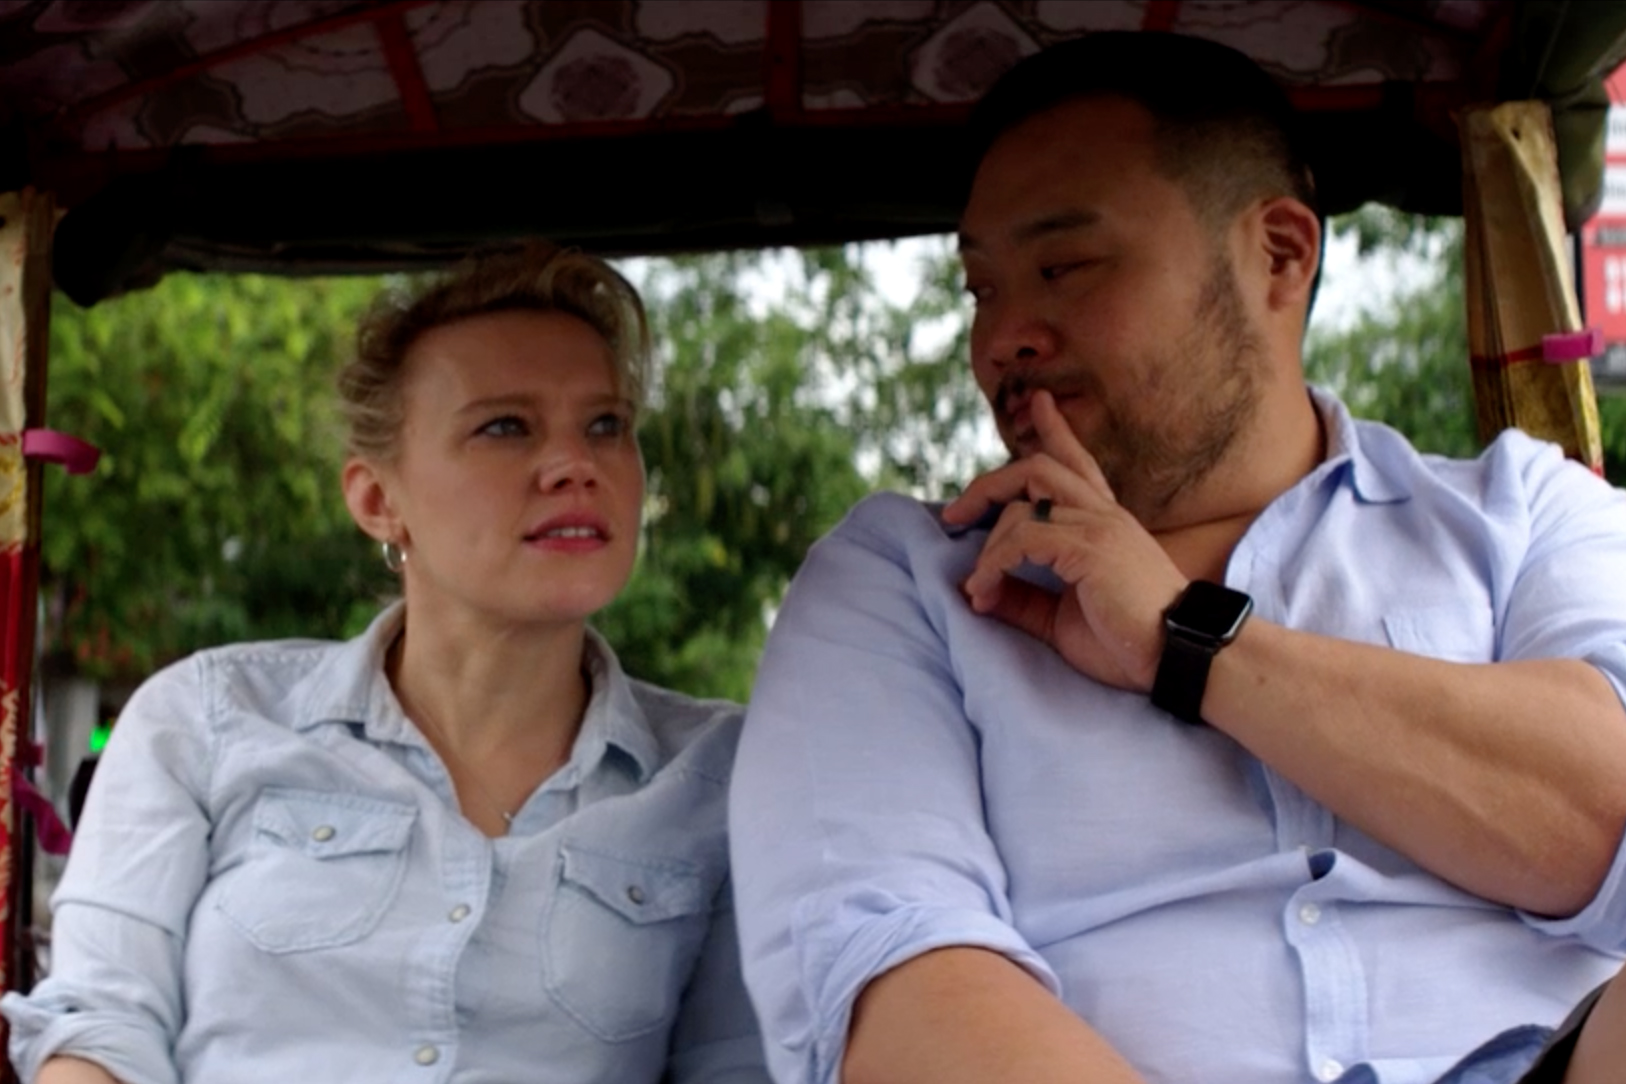 david chang and kate mckinnon chat